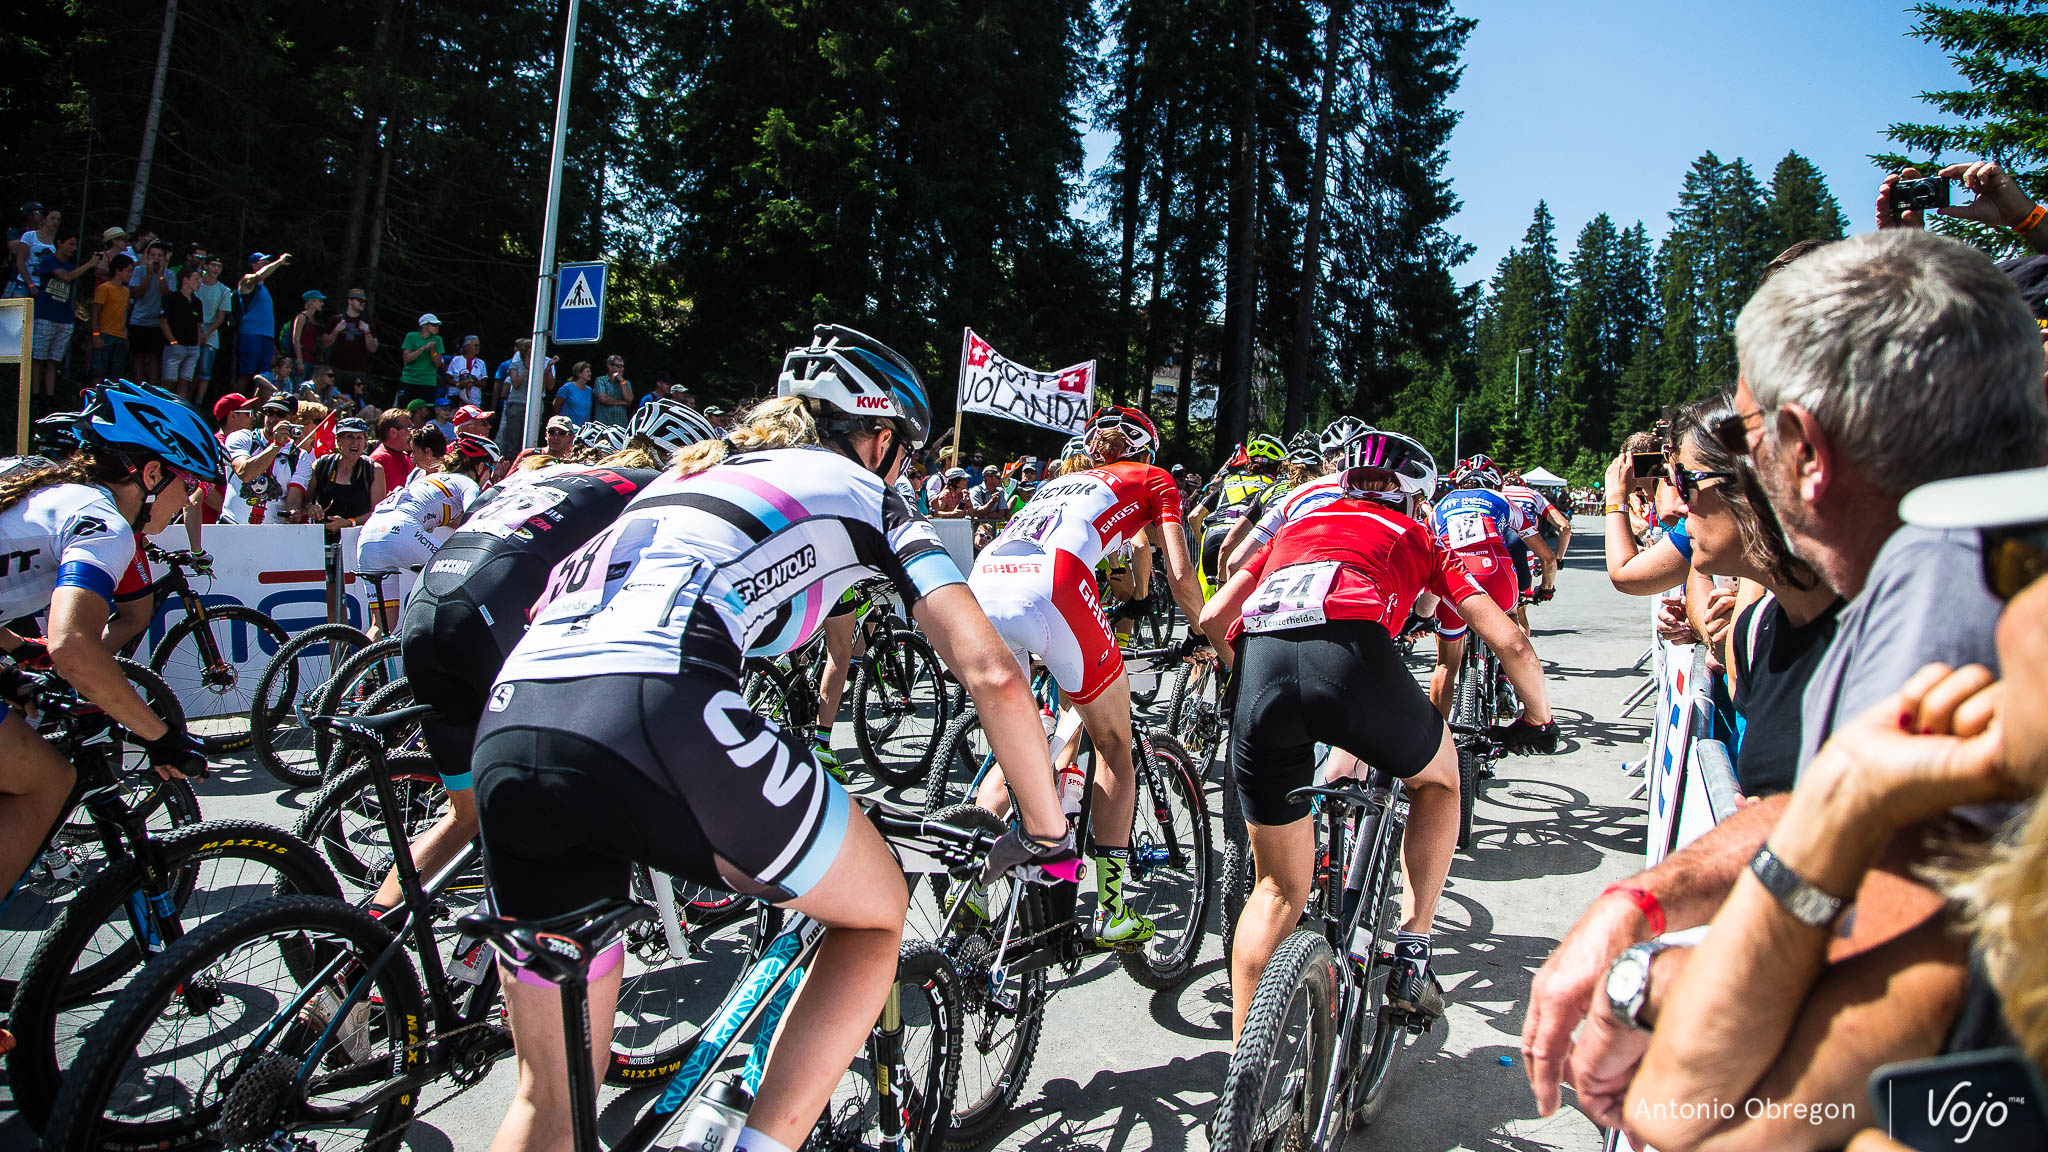 Lenzerheide_UCI_World_Cup_XC_2015_final_Porfoli_Women_Copyright_Antonio_Obregon_VojoMag